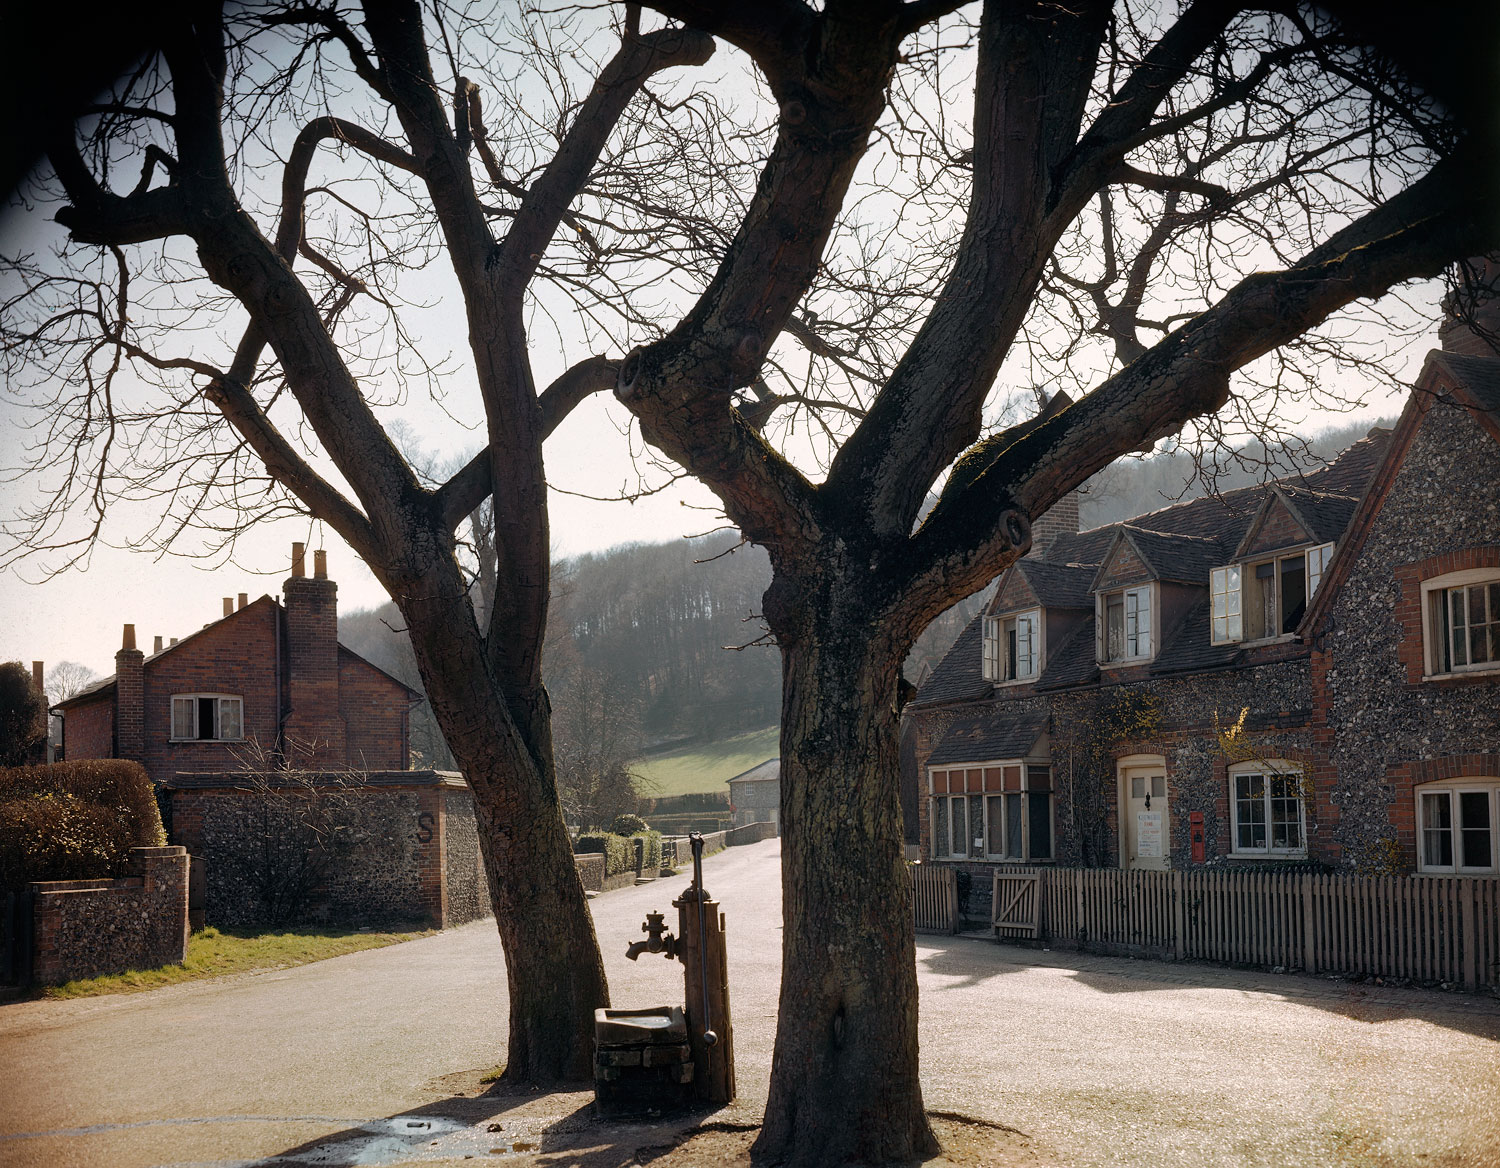 A small town in England in the spring of 1944, shortly before D-Day.